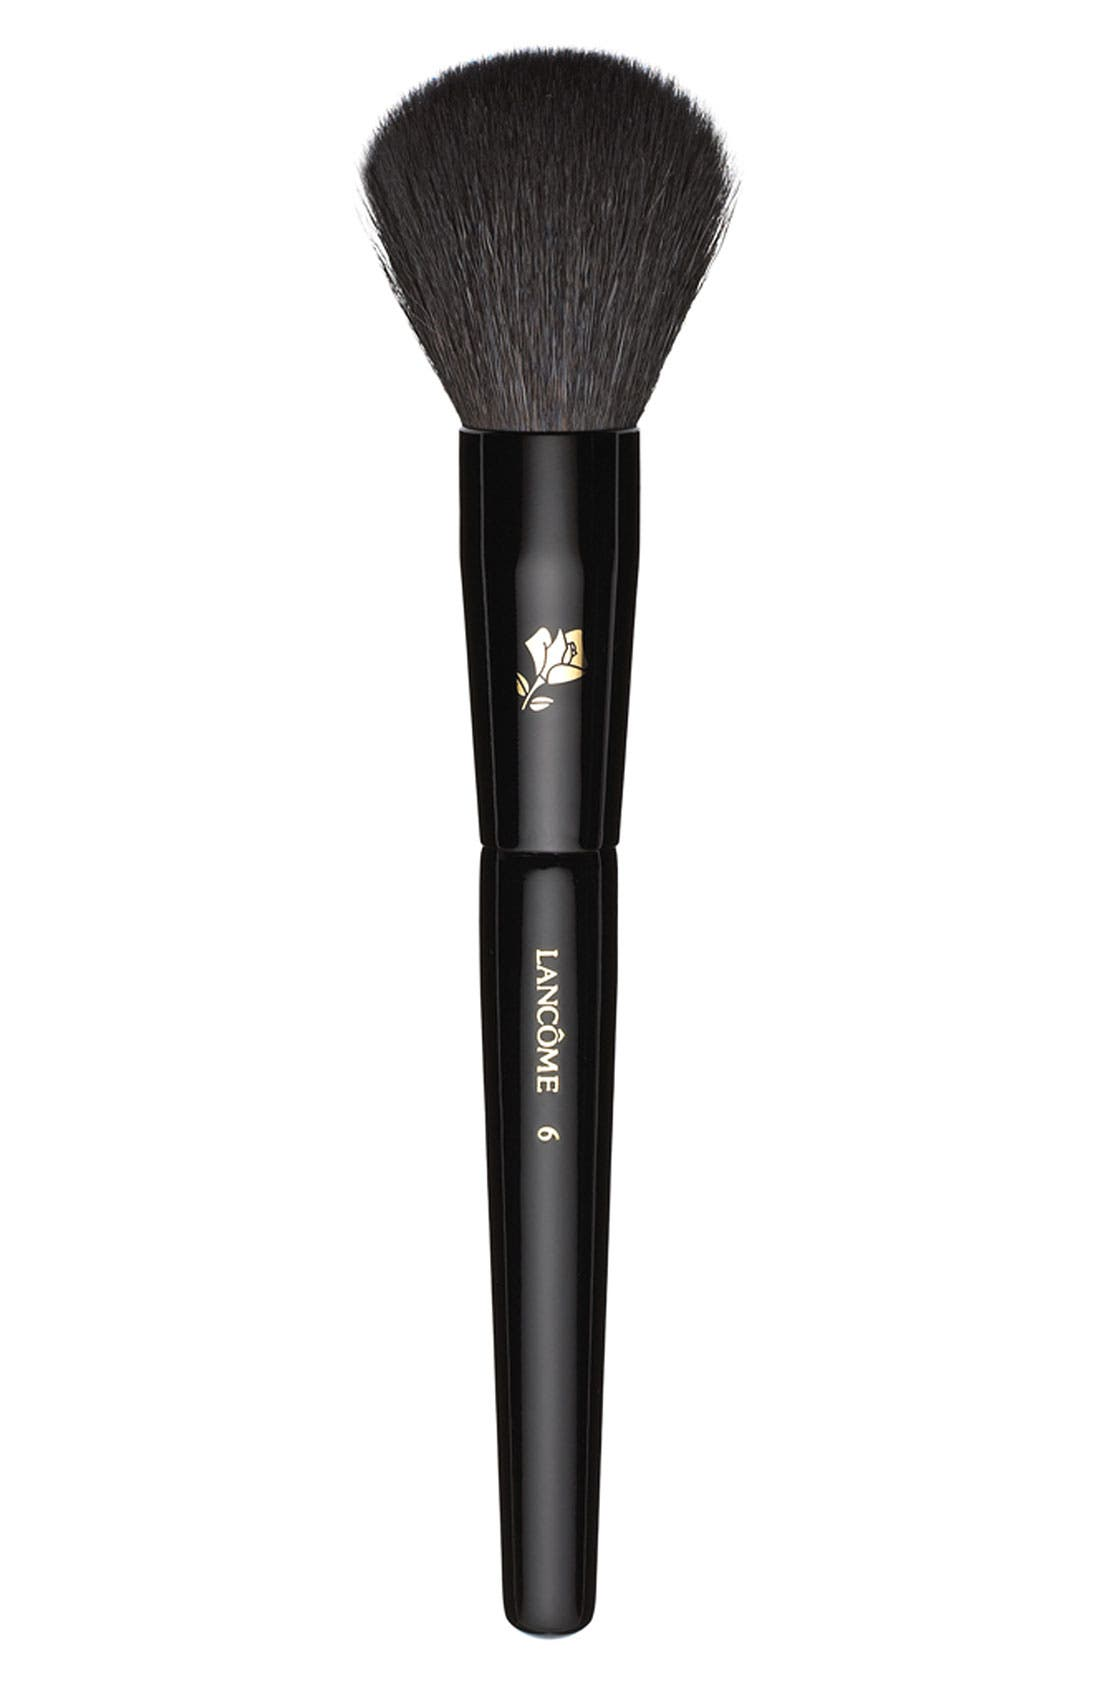 Natural Bristled Blush Brush,                         Main,                         color, 000